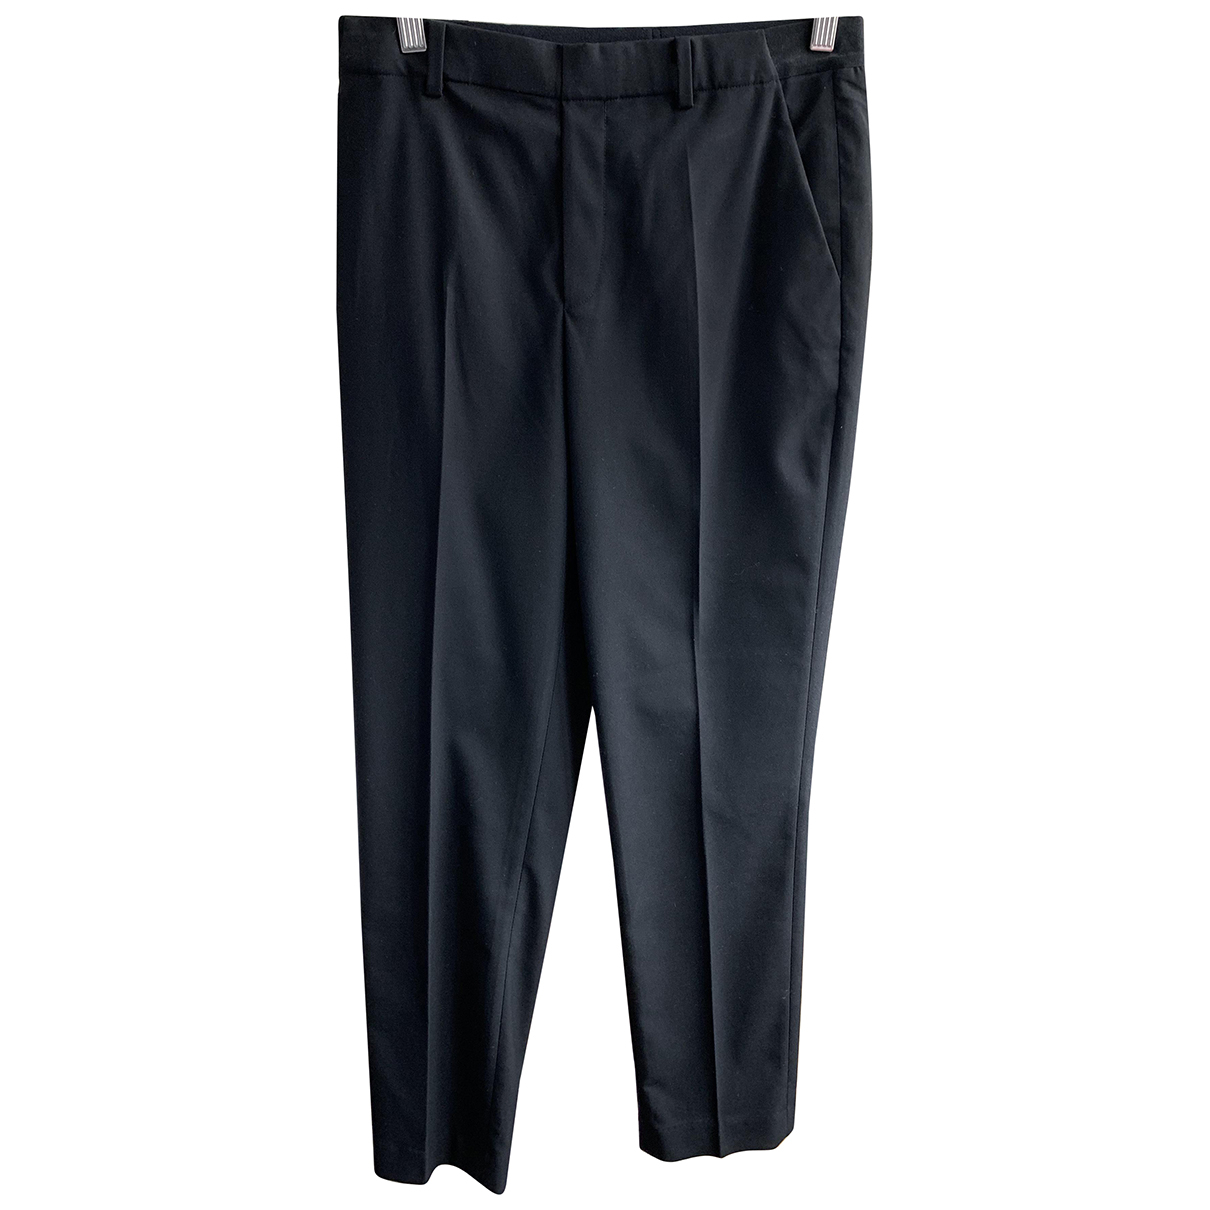 Uniqlo N Black Trousers for Women S International